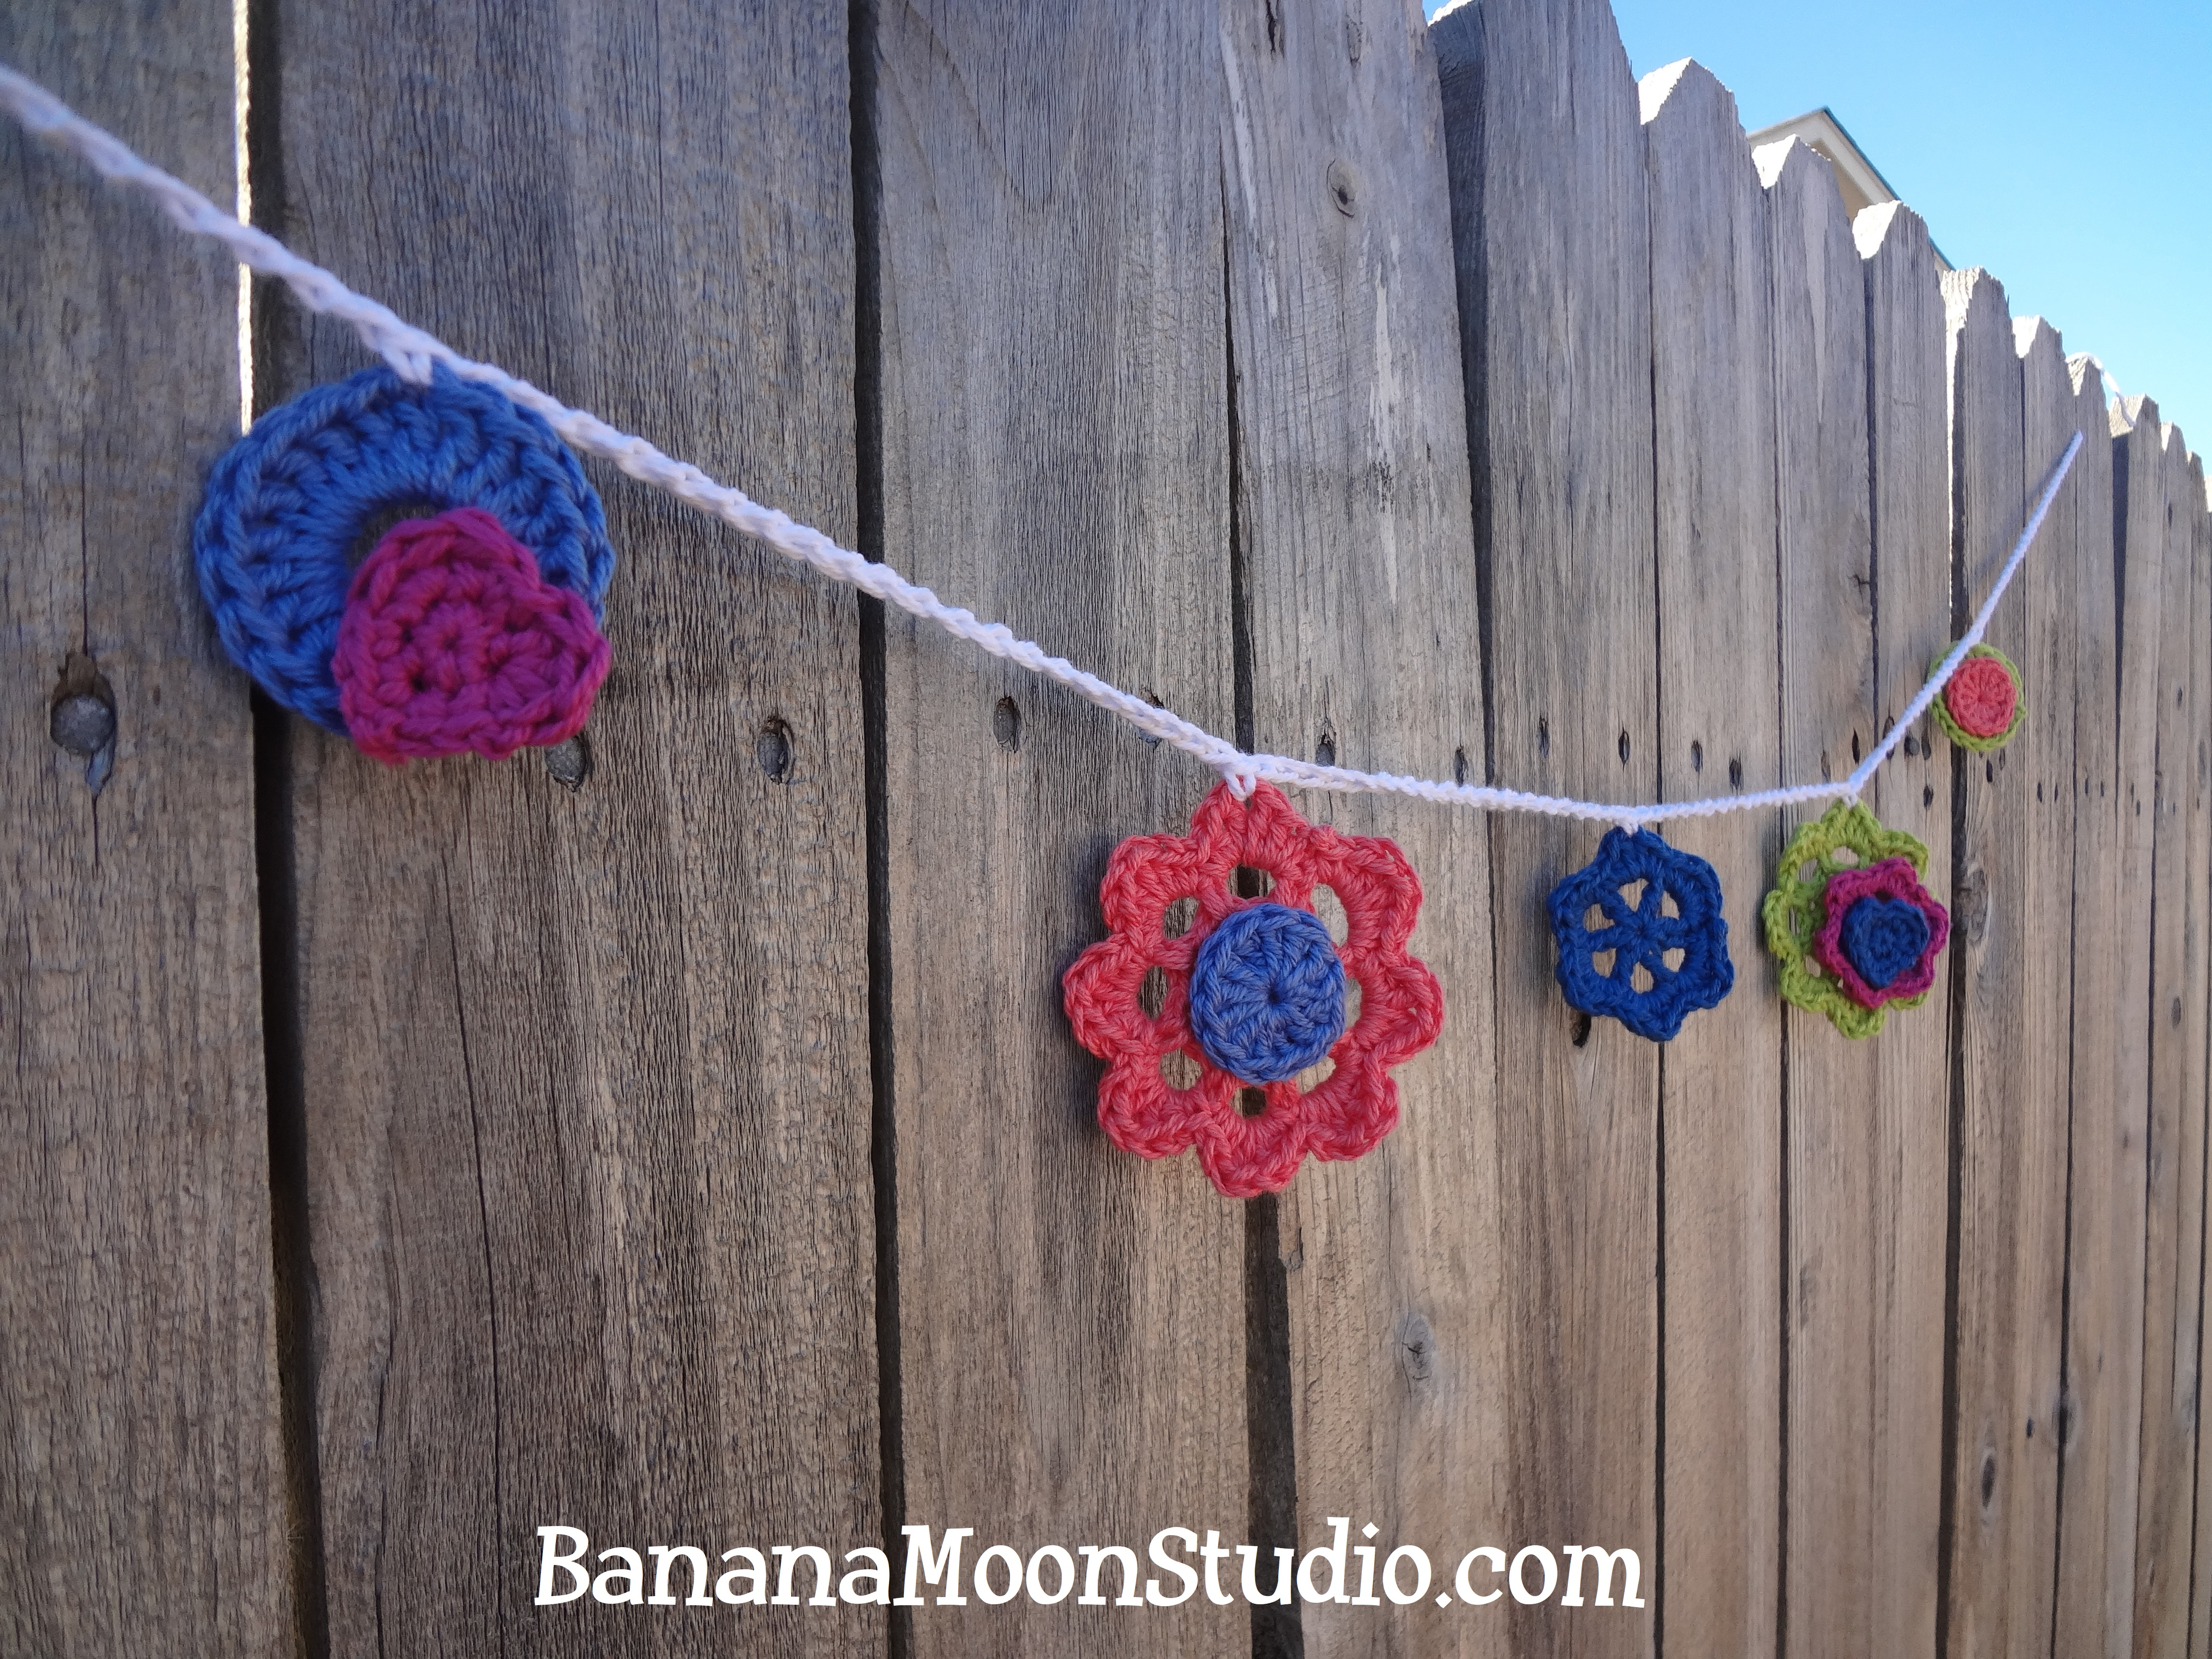 Crochet flowers and other small motifs on a white chain with a wooden fence behind it. Gardens Galore Garland, free crochet pattern for a floral spring garland, from Banana Moon Studio